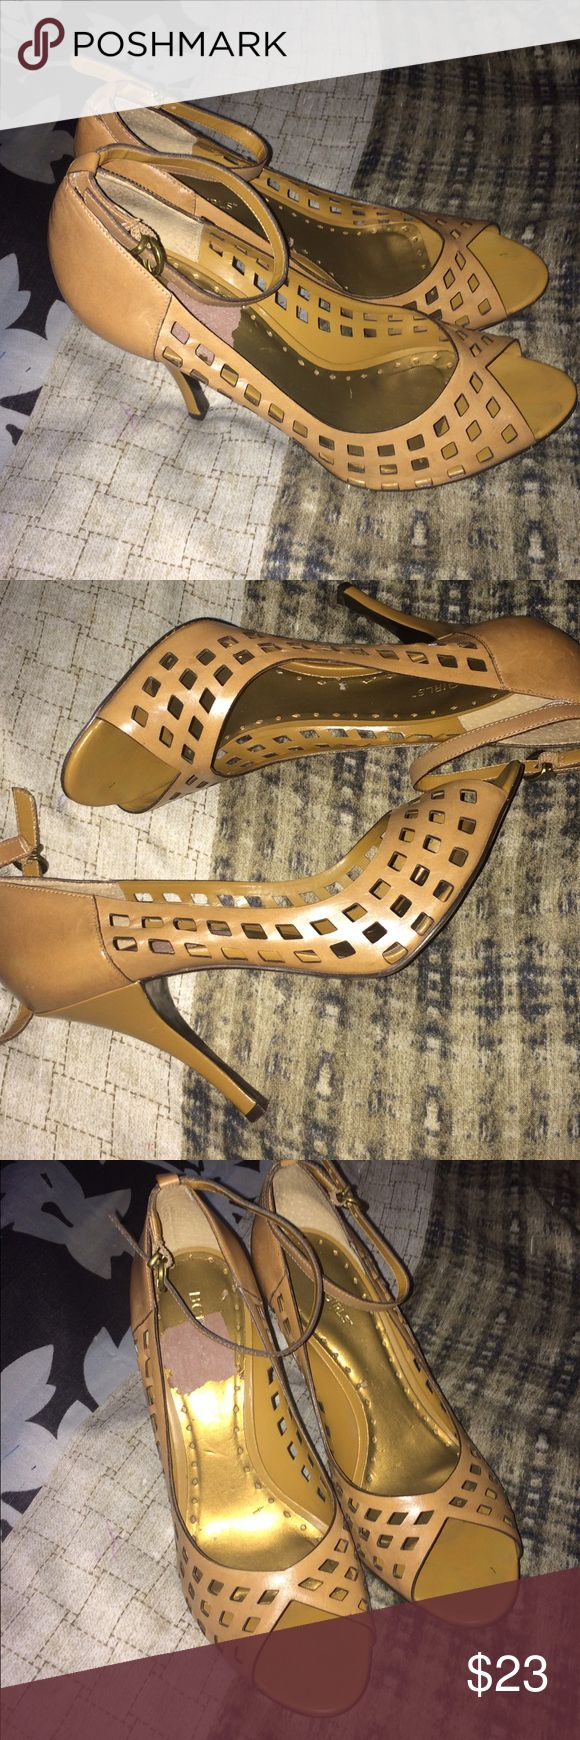 BCBG tan high heel sandals Very cute sandals leather upper made in Brazil. These have been worn a couple times and have a couple flaws seen on pictures. One tiny scratch on the right heel and the skin came off on the part of the insole from taking off the sticker tag. Don't like the price? Feel free to make a reasonable offer. 😉 BCBGirls Shoes Heels